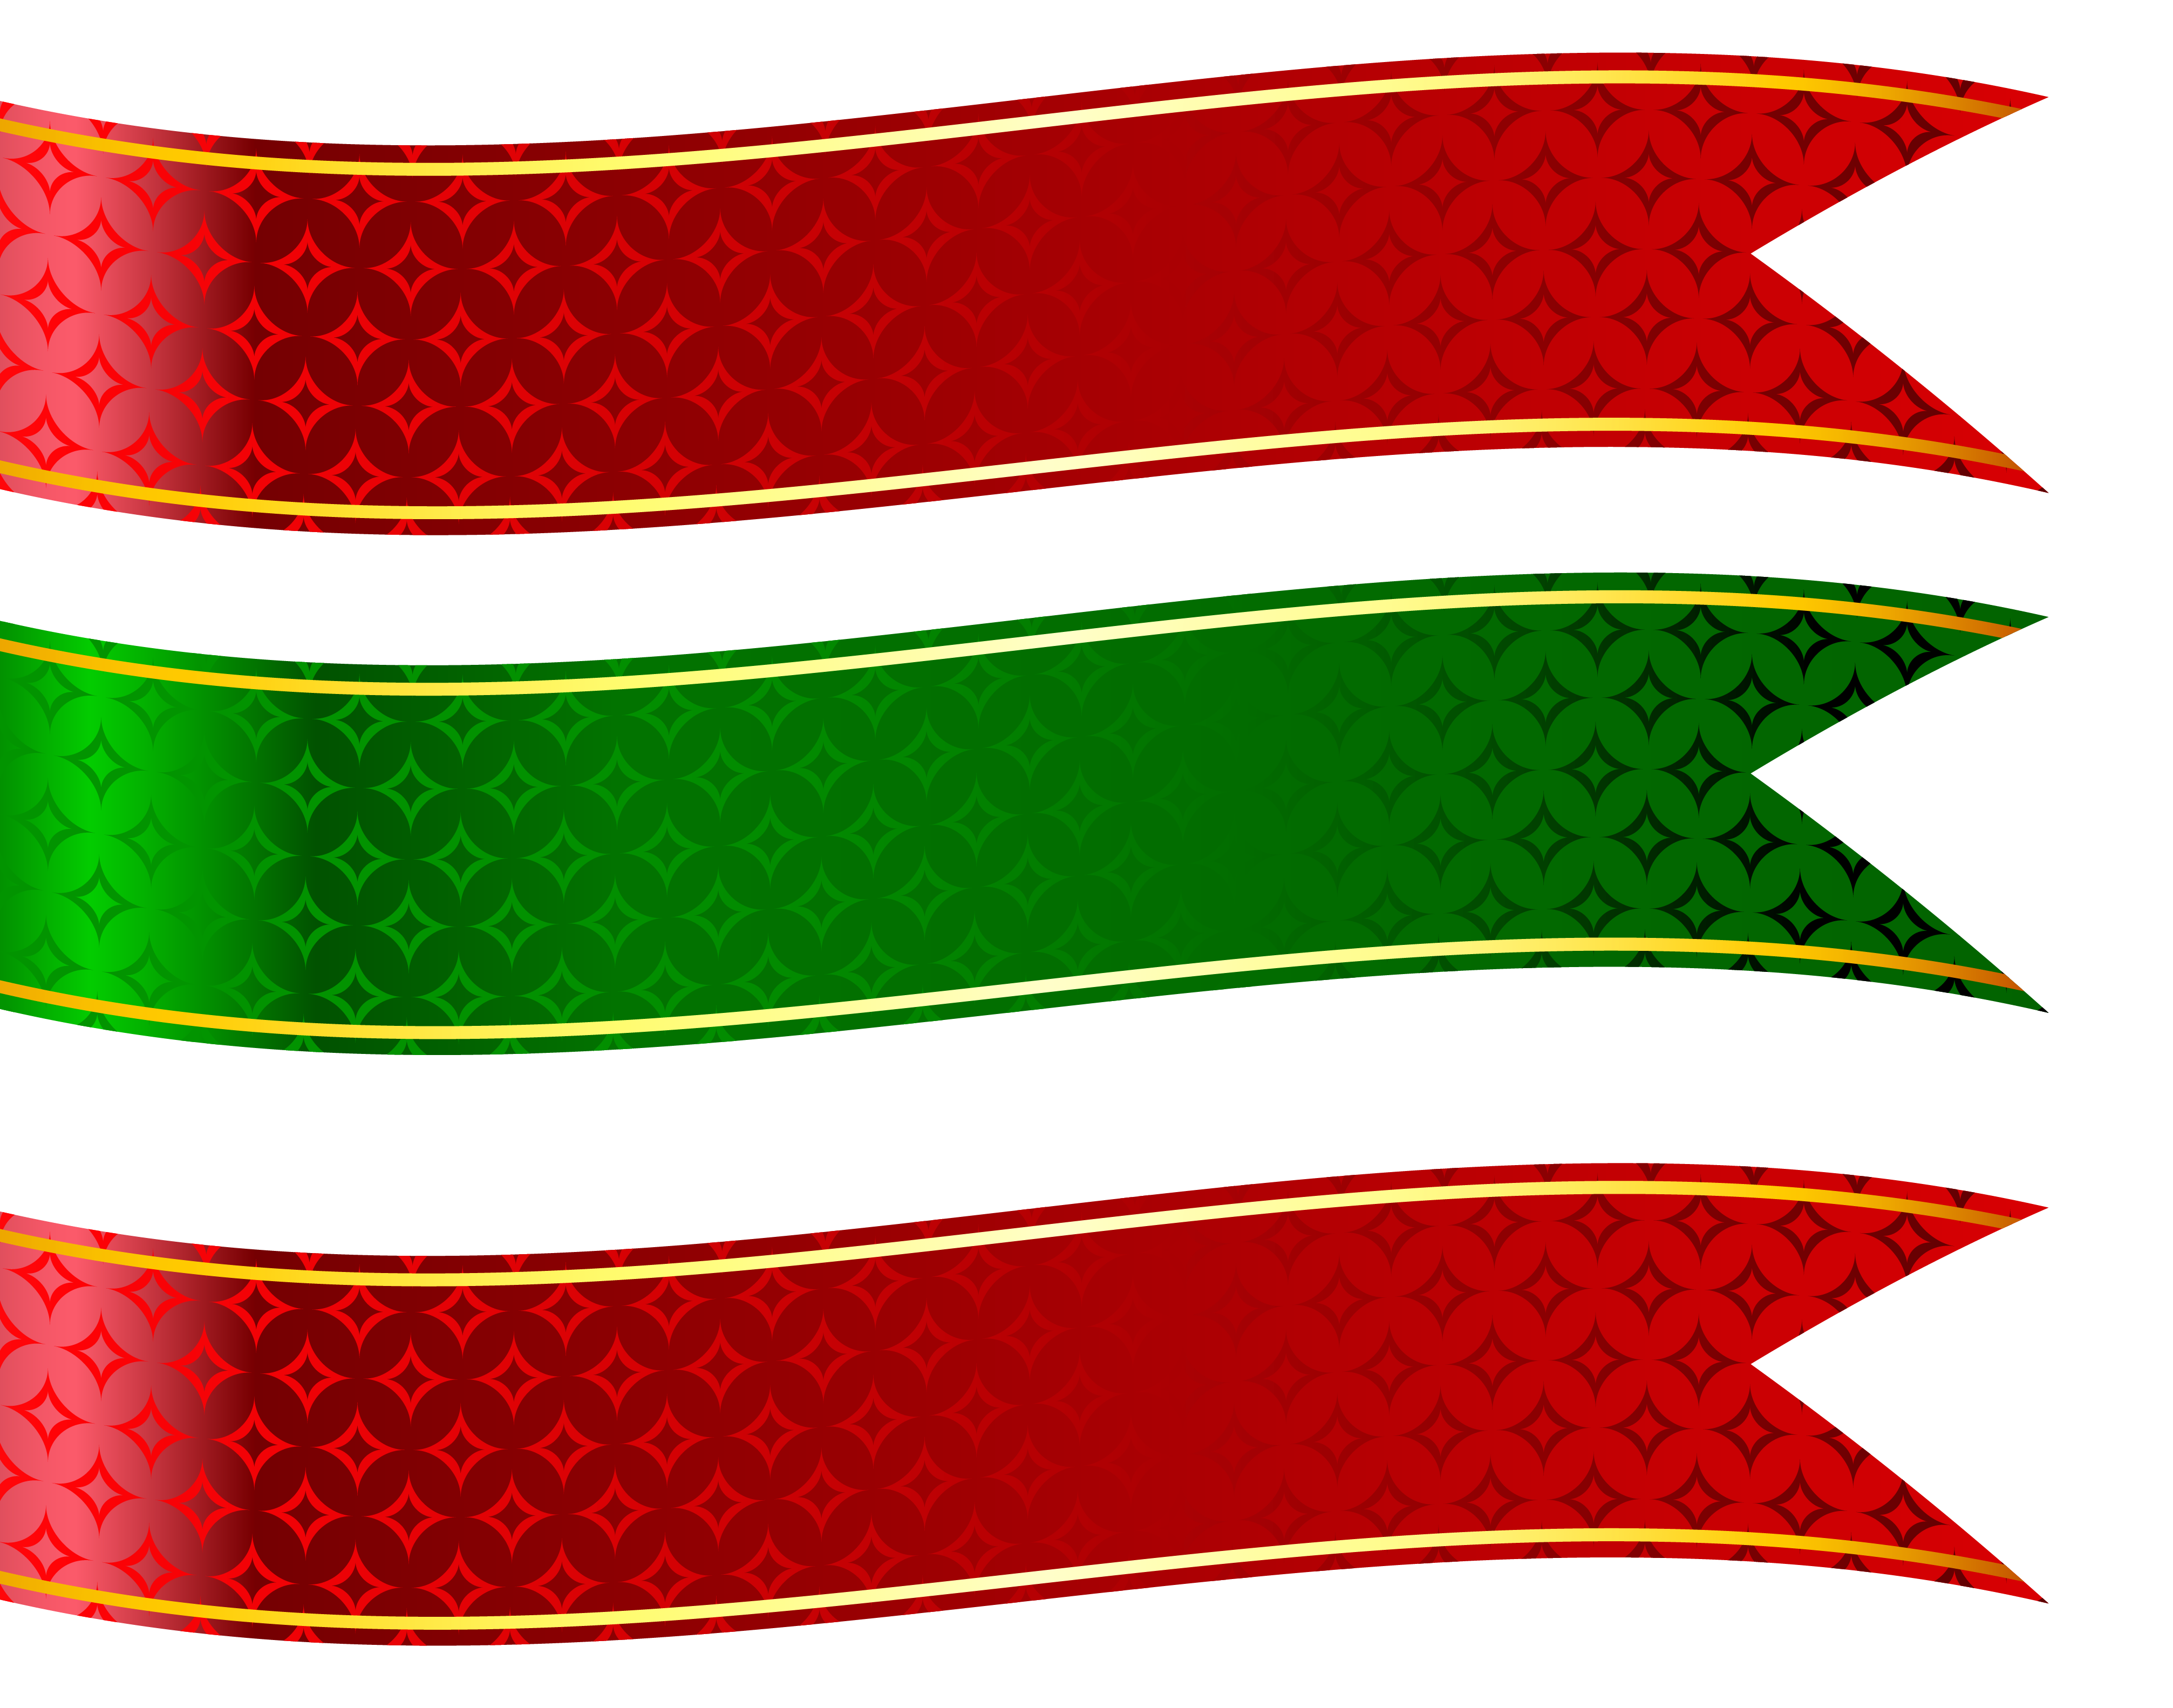 Green And Red Banners Set Png Clipart Picture Png 4027 3165 Banner Shapes Free Clip Art Picture Banner